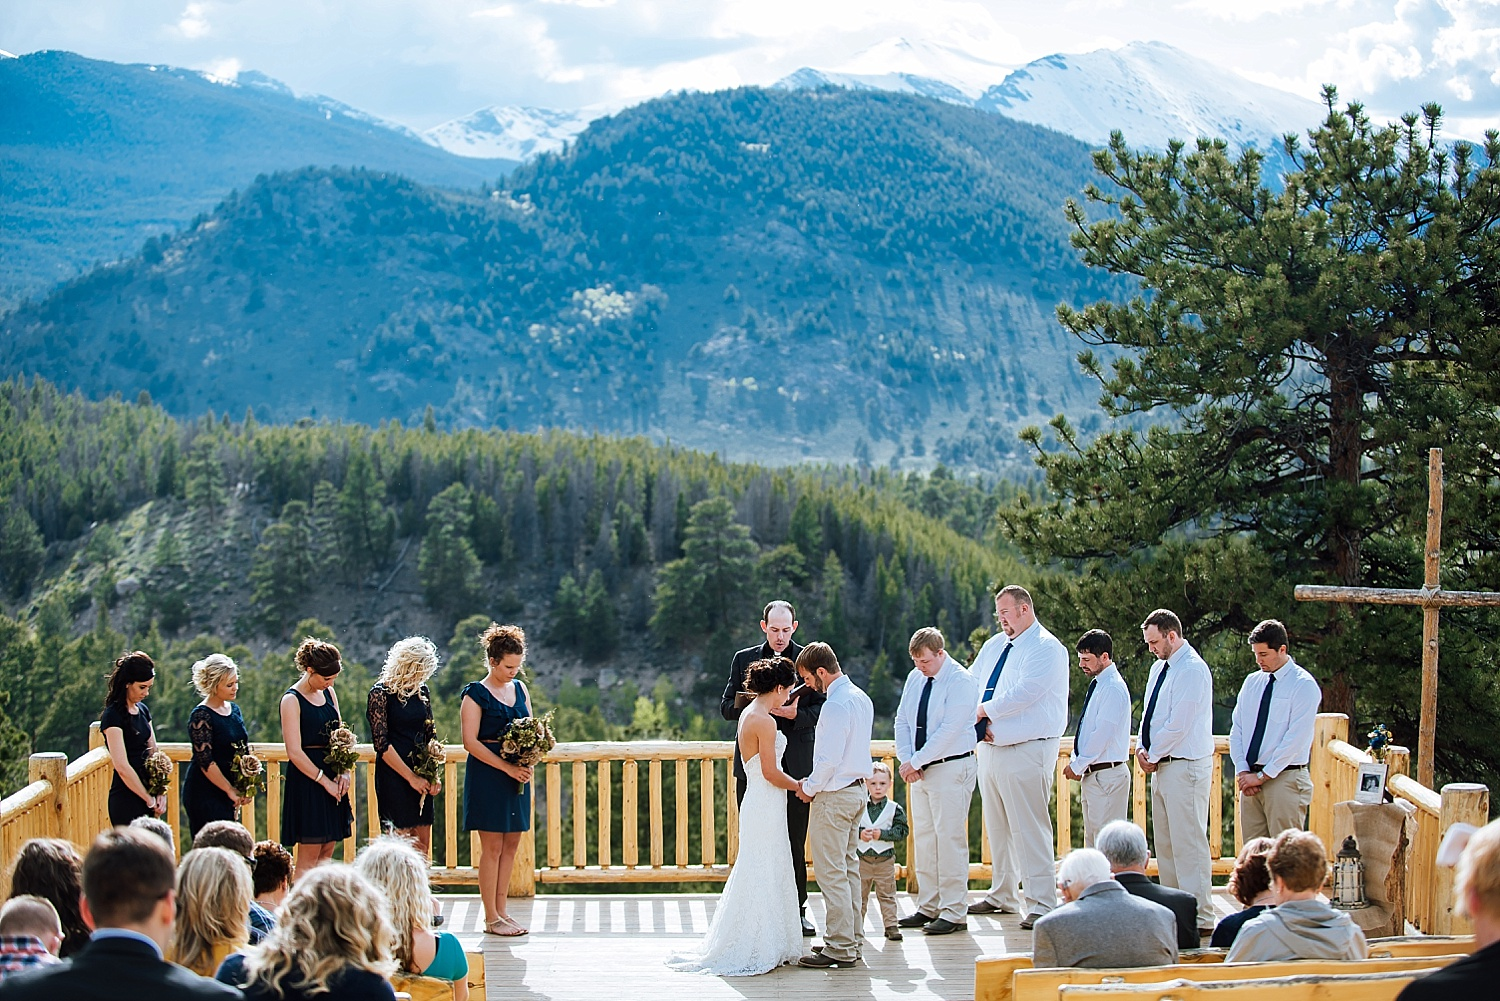 YMCA of the Rockies has a separate wedding location called the Overlook Chapel. It is such a nice place for an intimate mountain wedding. Photo by Maddie Mae Photography